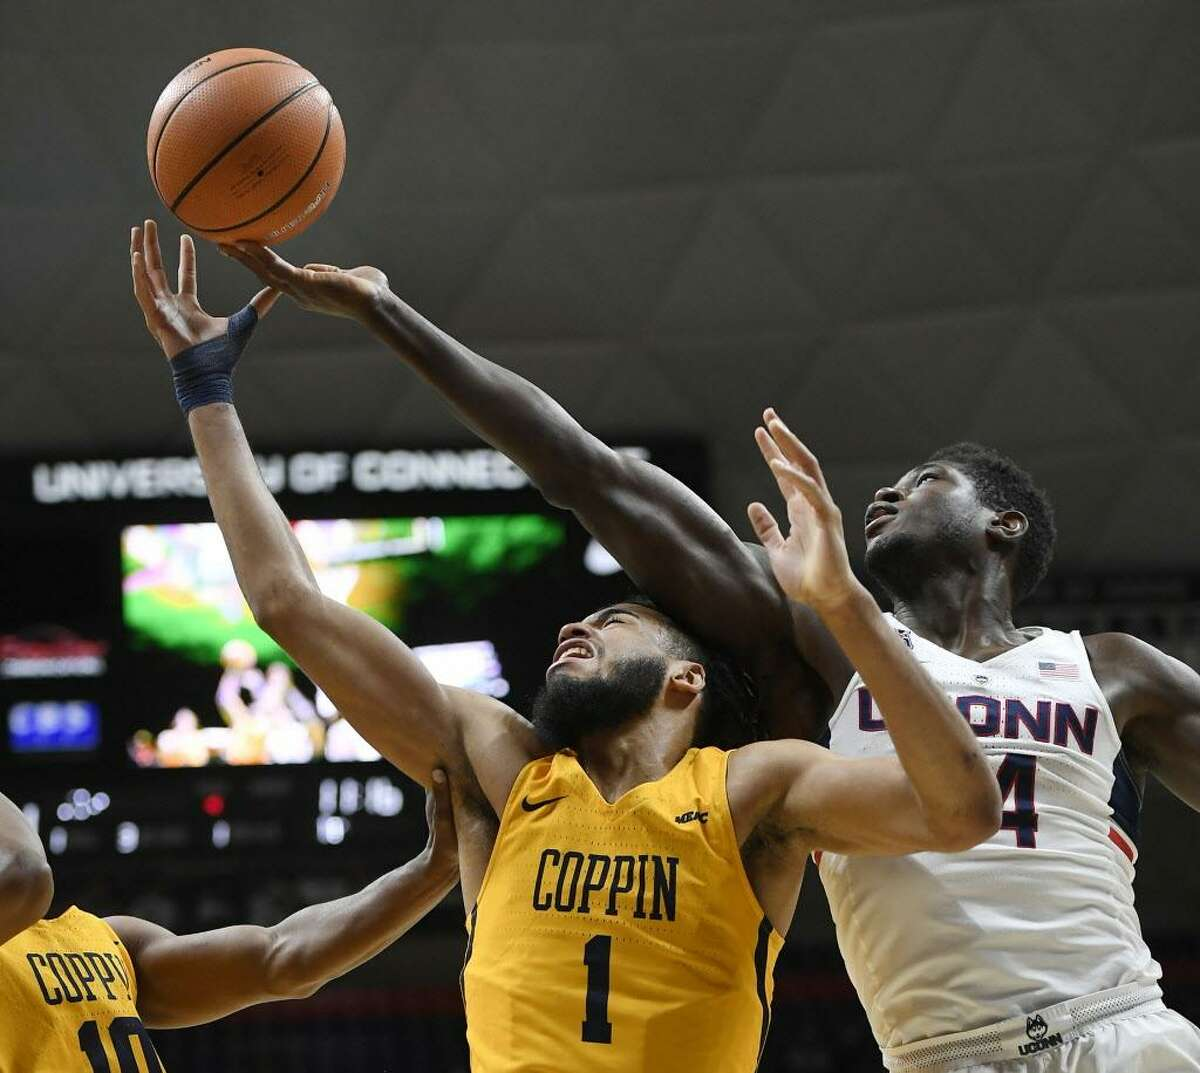 Connecticut's David Onuorah, right, grabs a rebound over the head of Coppin State's Chad Andrews- Fulton, left, during the first half of an NCAA college basketball game, Saturday, Dec. 9, 2017, in Storrs.